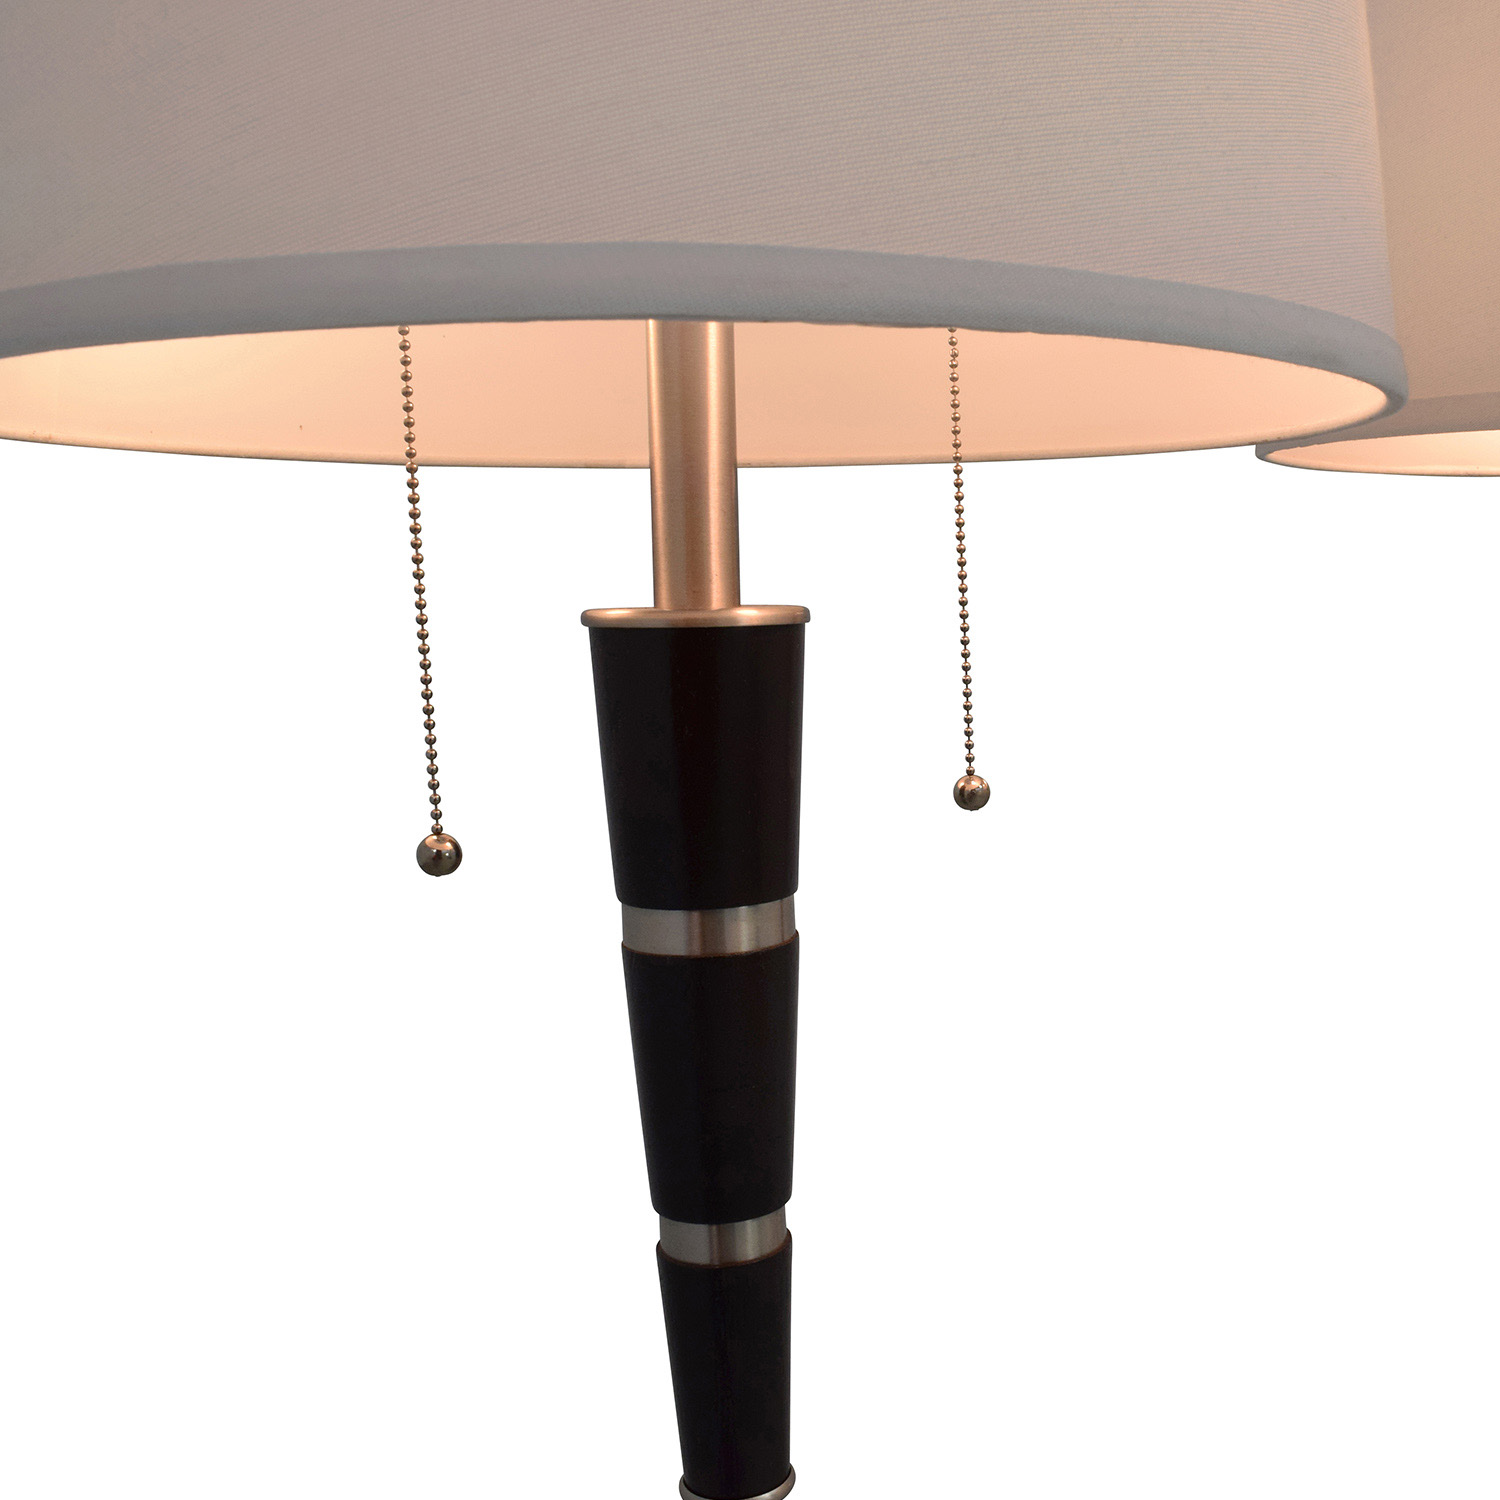 Nordstrom Black and Chrome Standing Floor Lamps sale